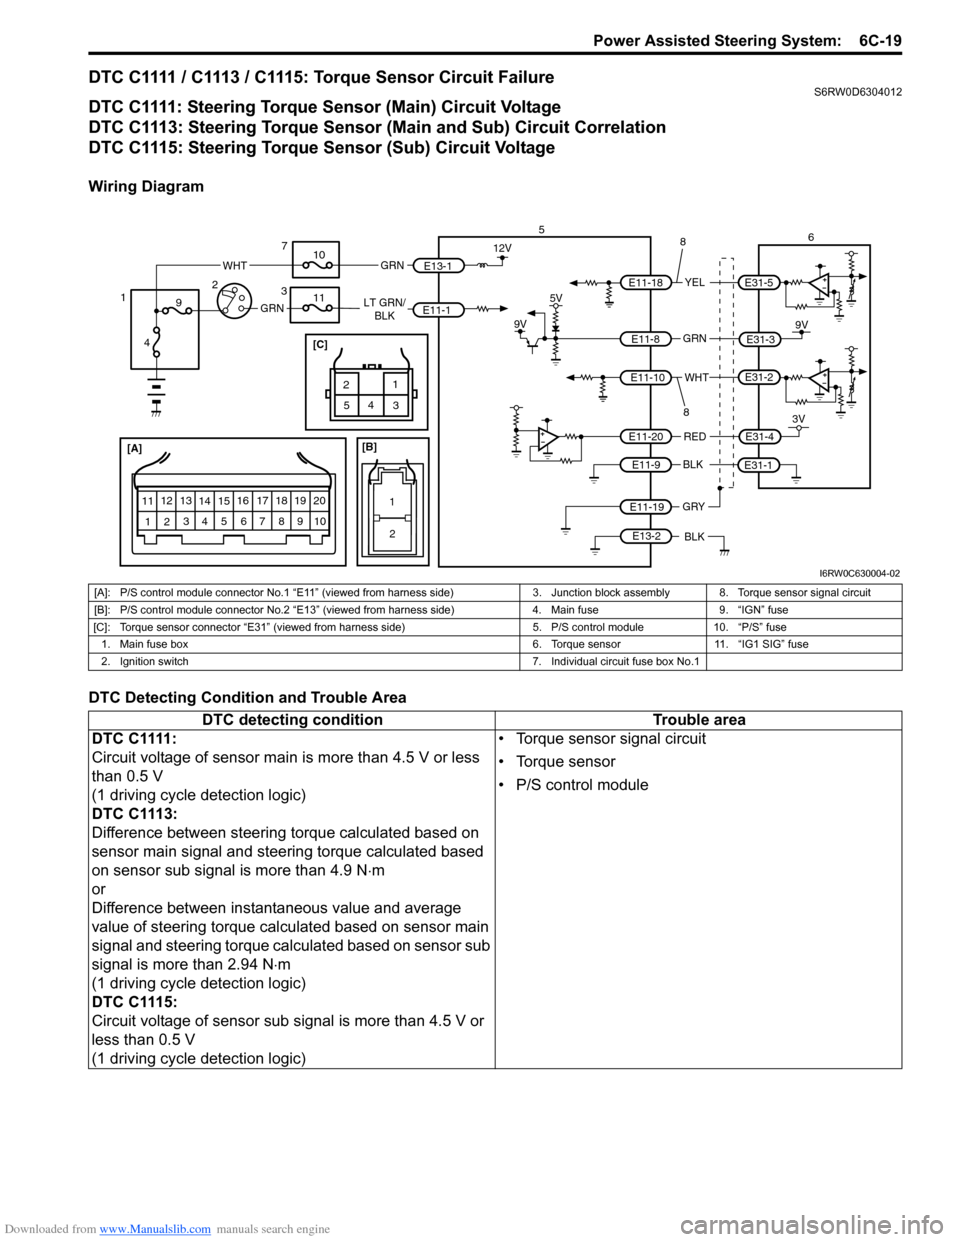 SUZUKI SX4 2006 1.G Service Workshop Manual, Page 899